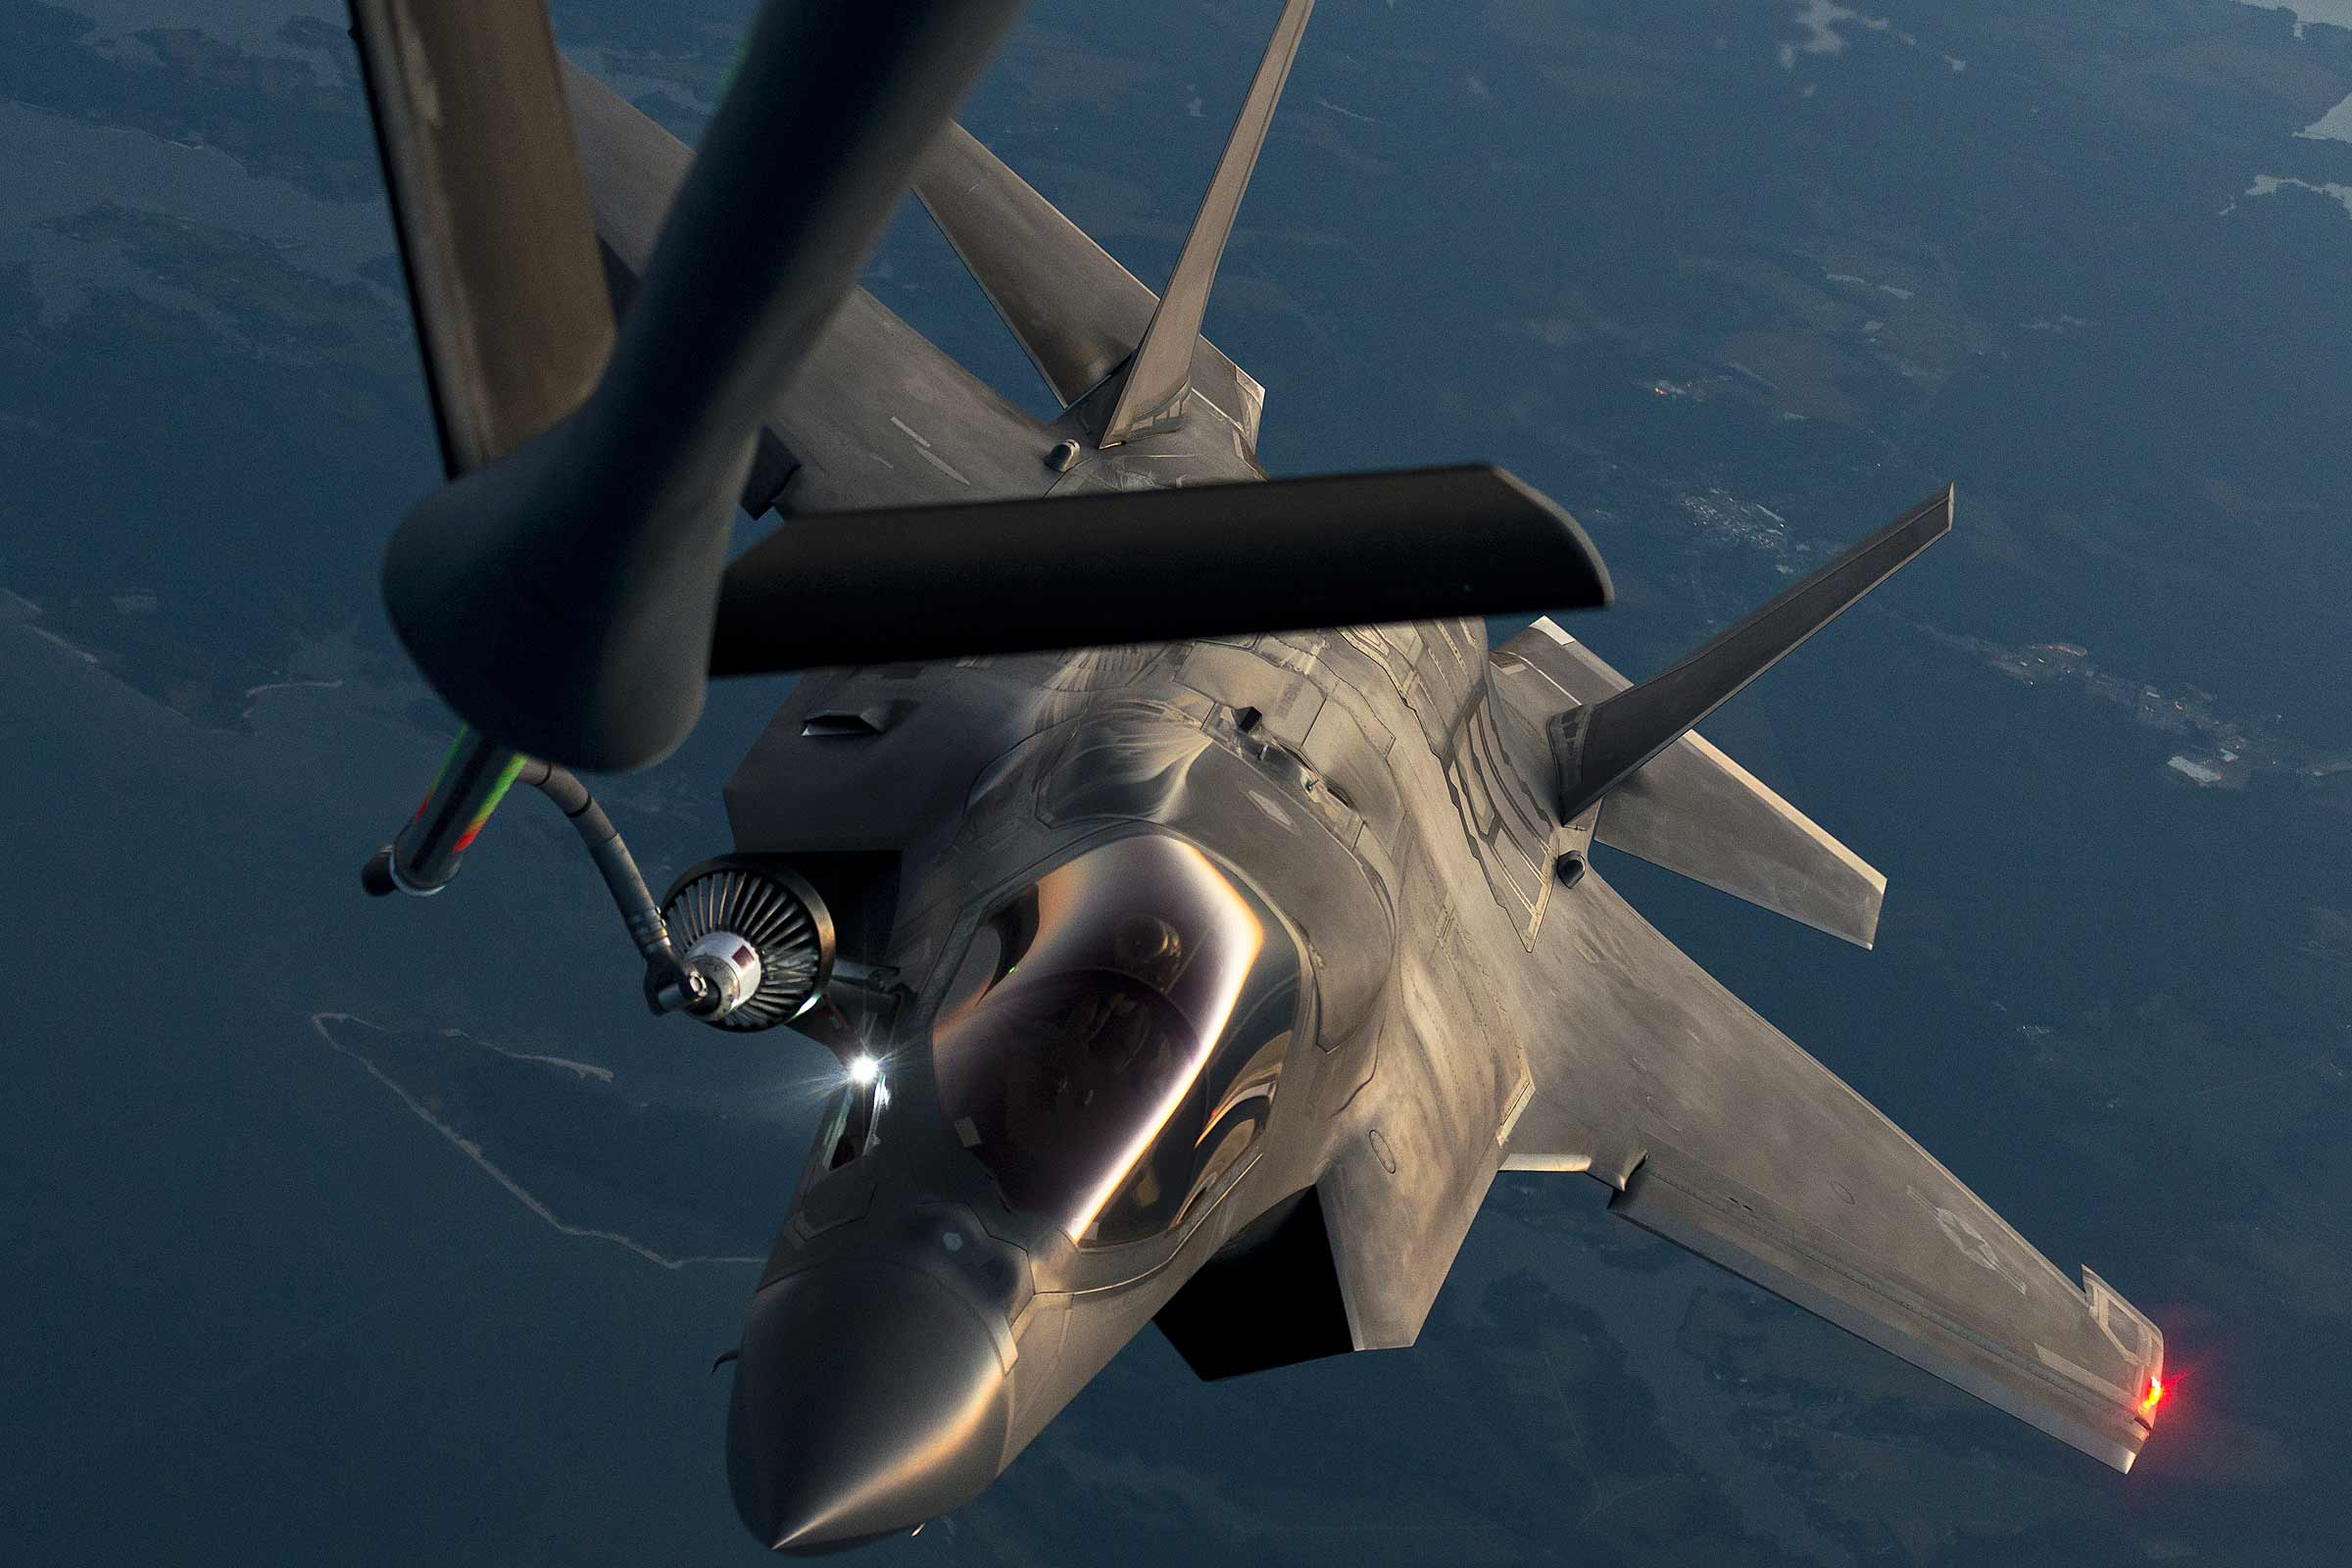 Test Agency Approves Fix for Flawed F-35 Light That Blinded KC-135 Crews